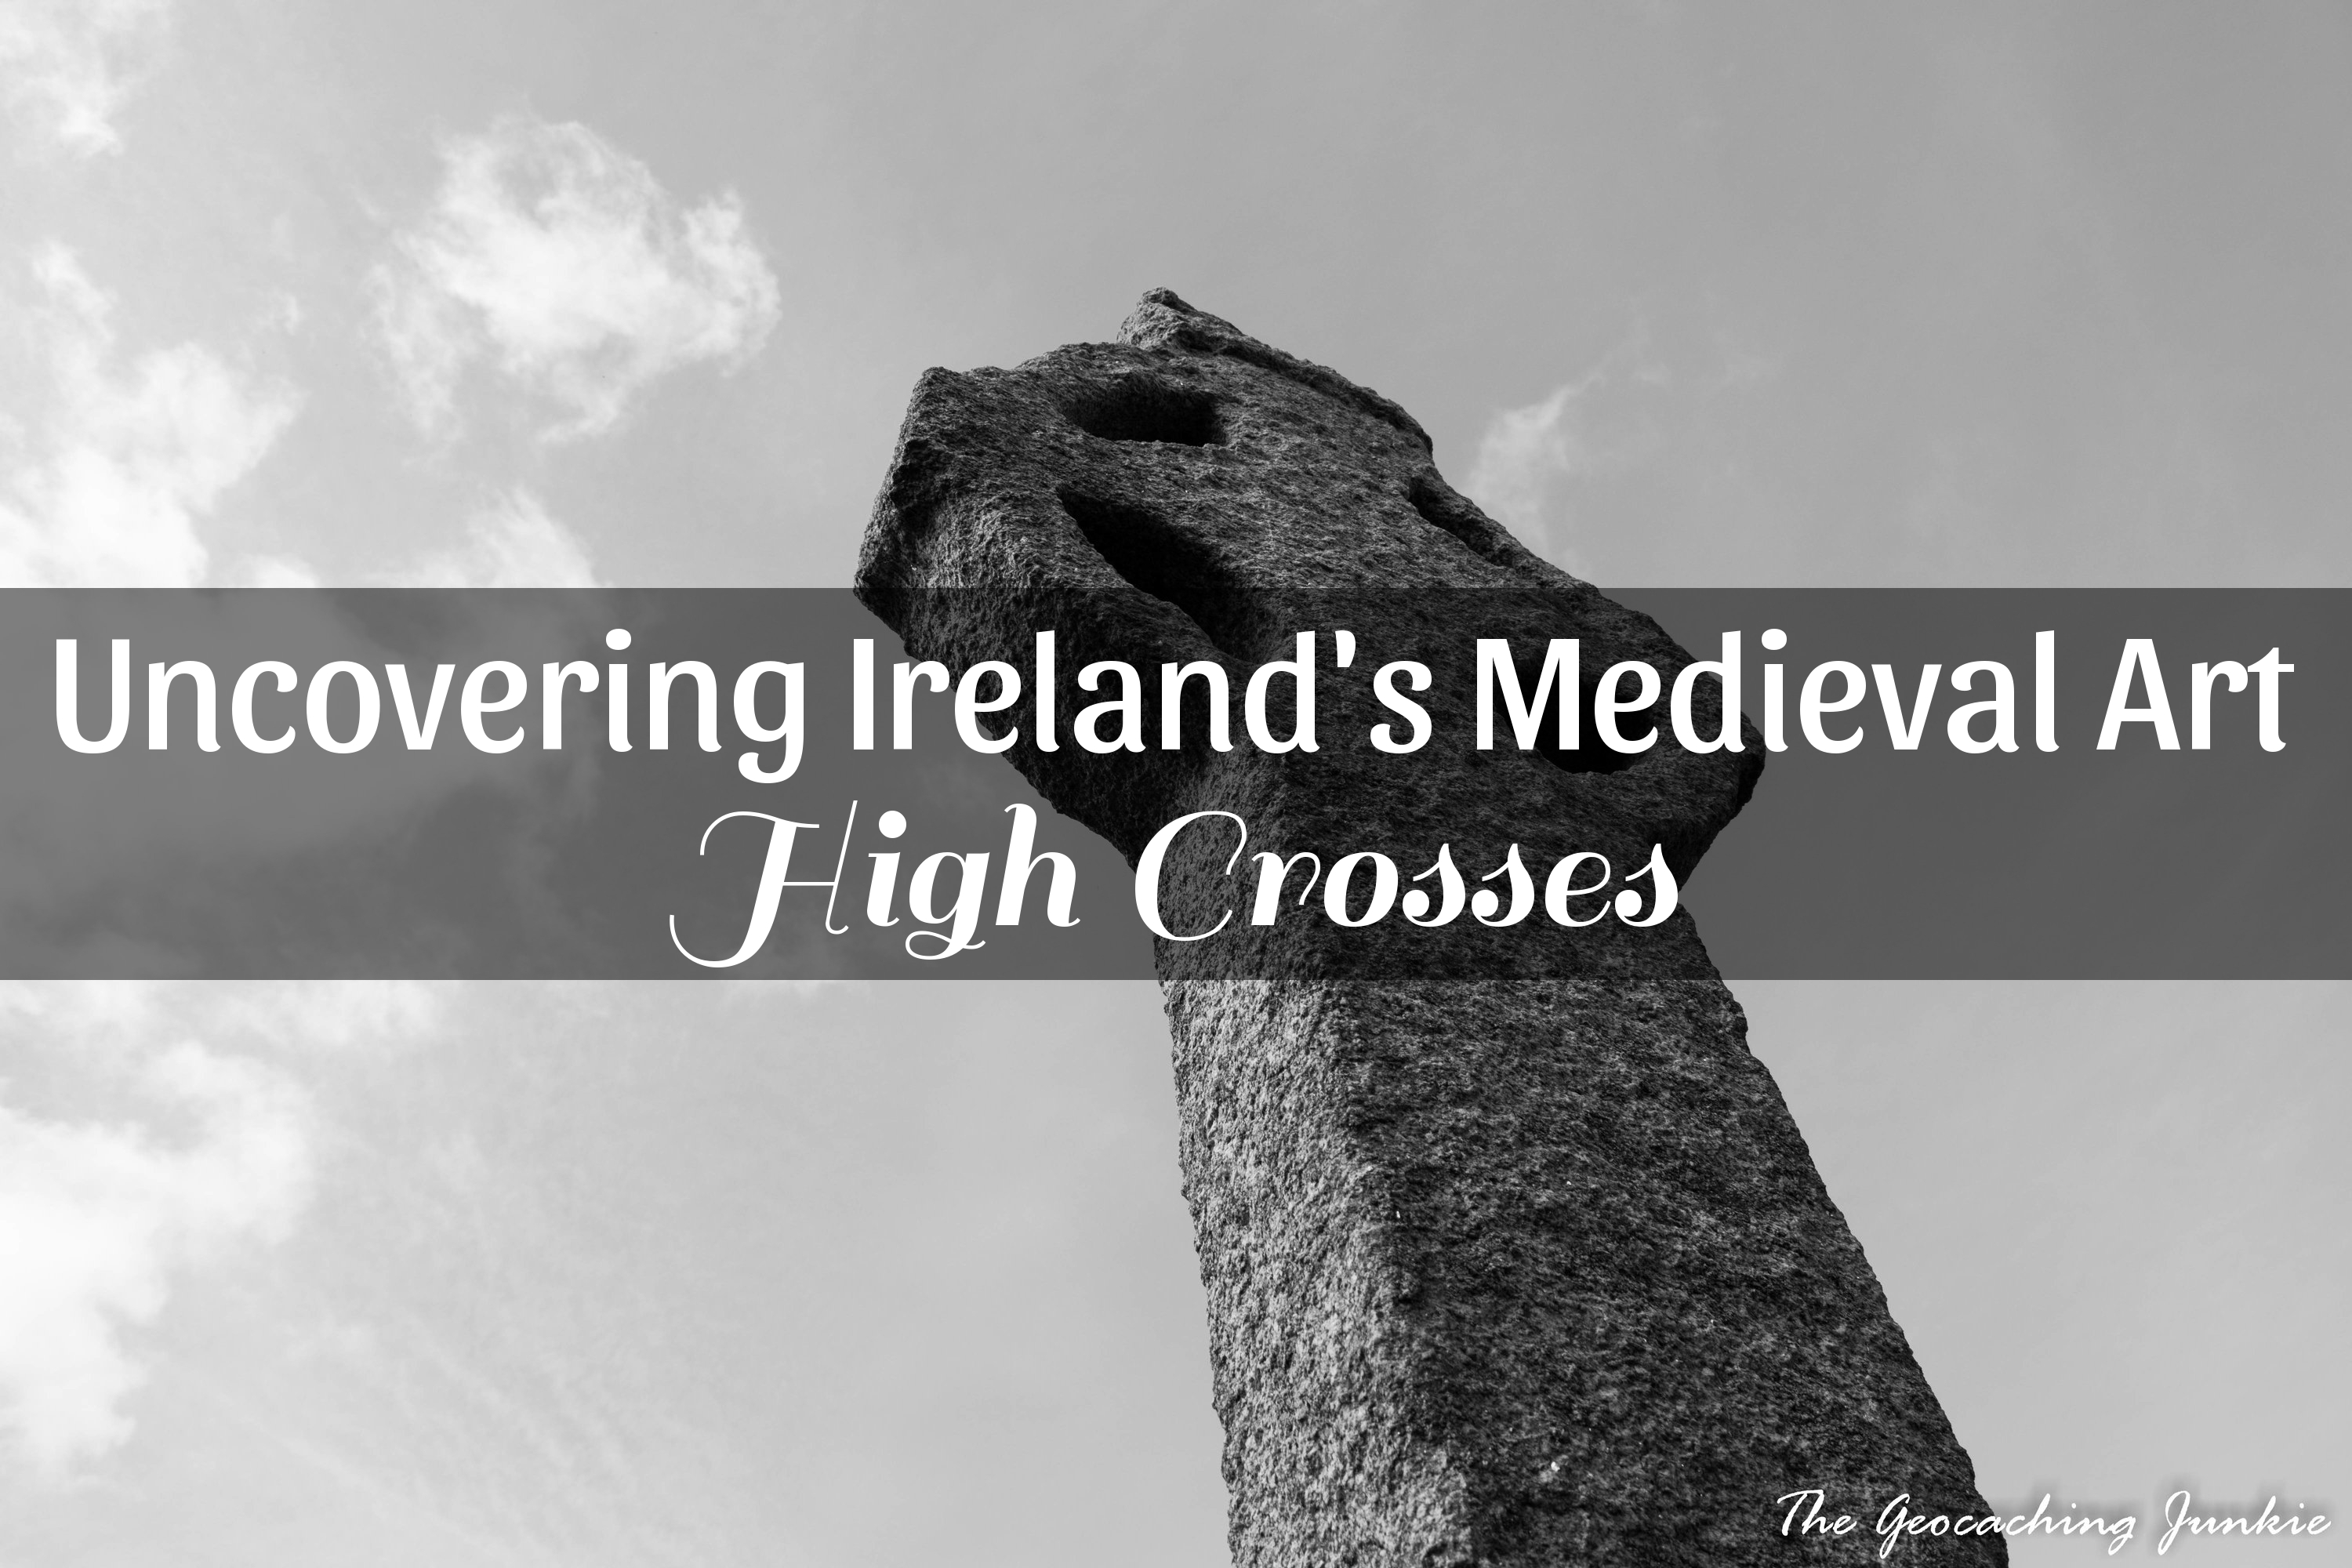 Uncovering Ireland's Medieval Art: High Crosses